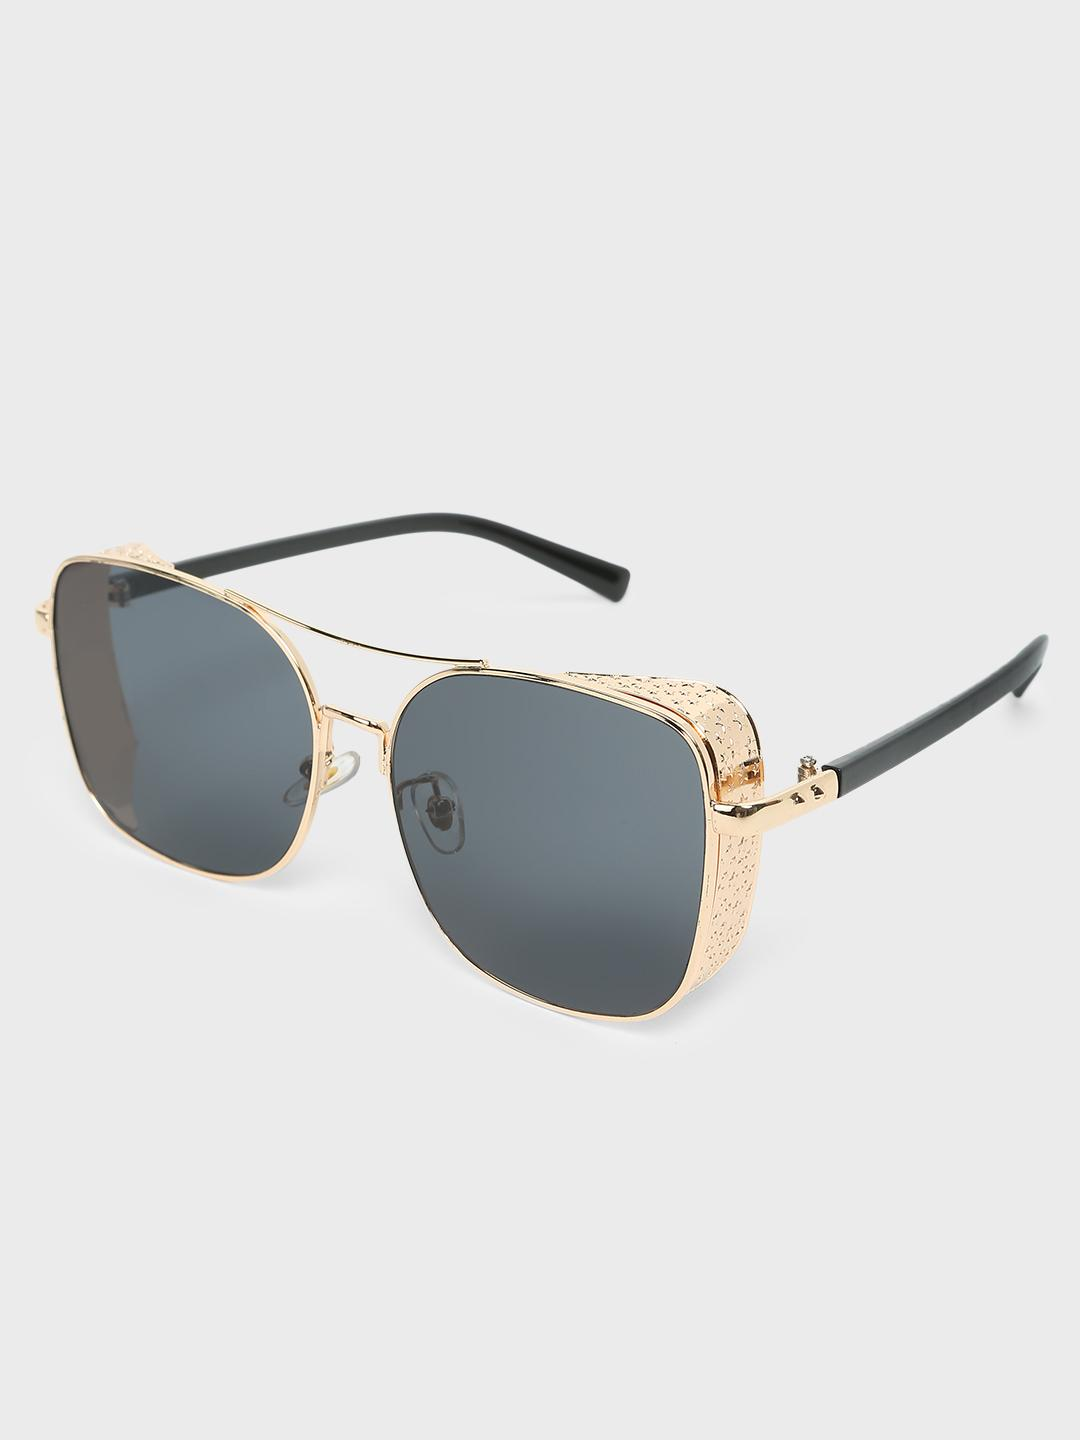 Fuzoku GOLDEN/BLACK Bratva Square Sunglasses 1